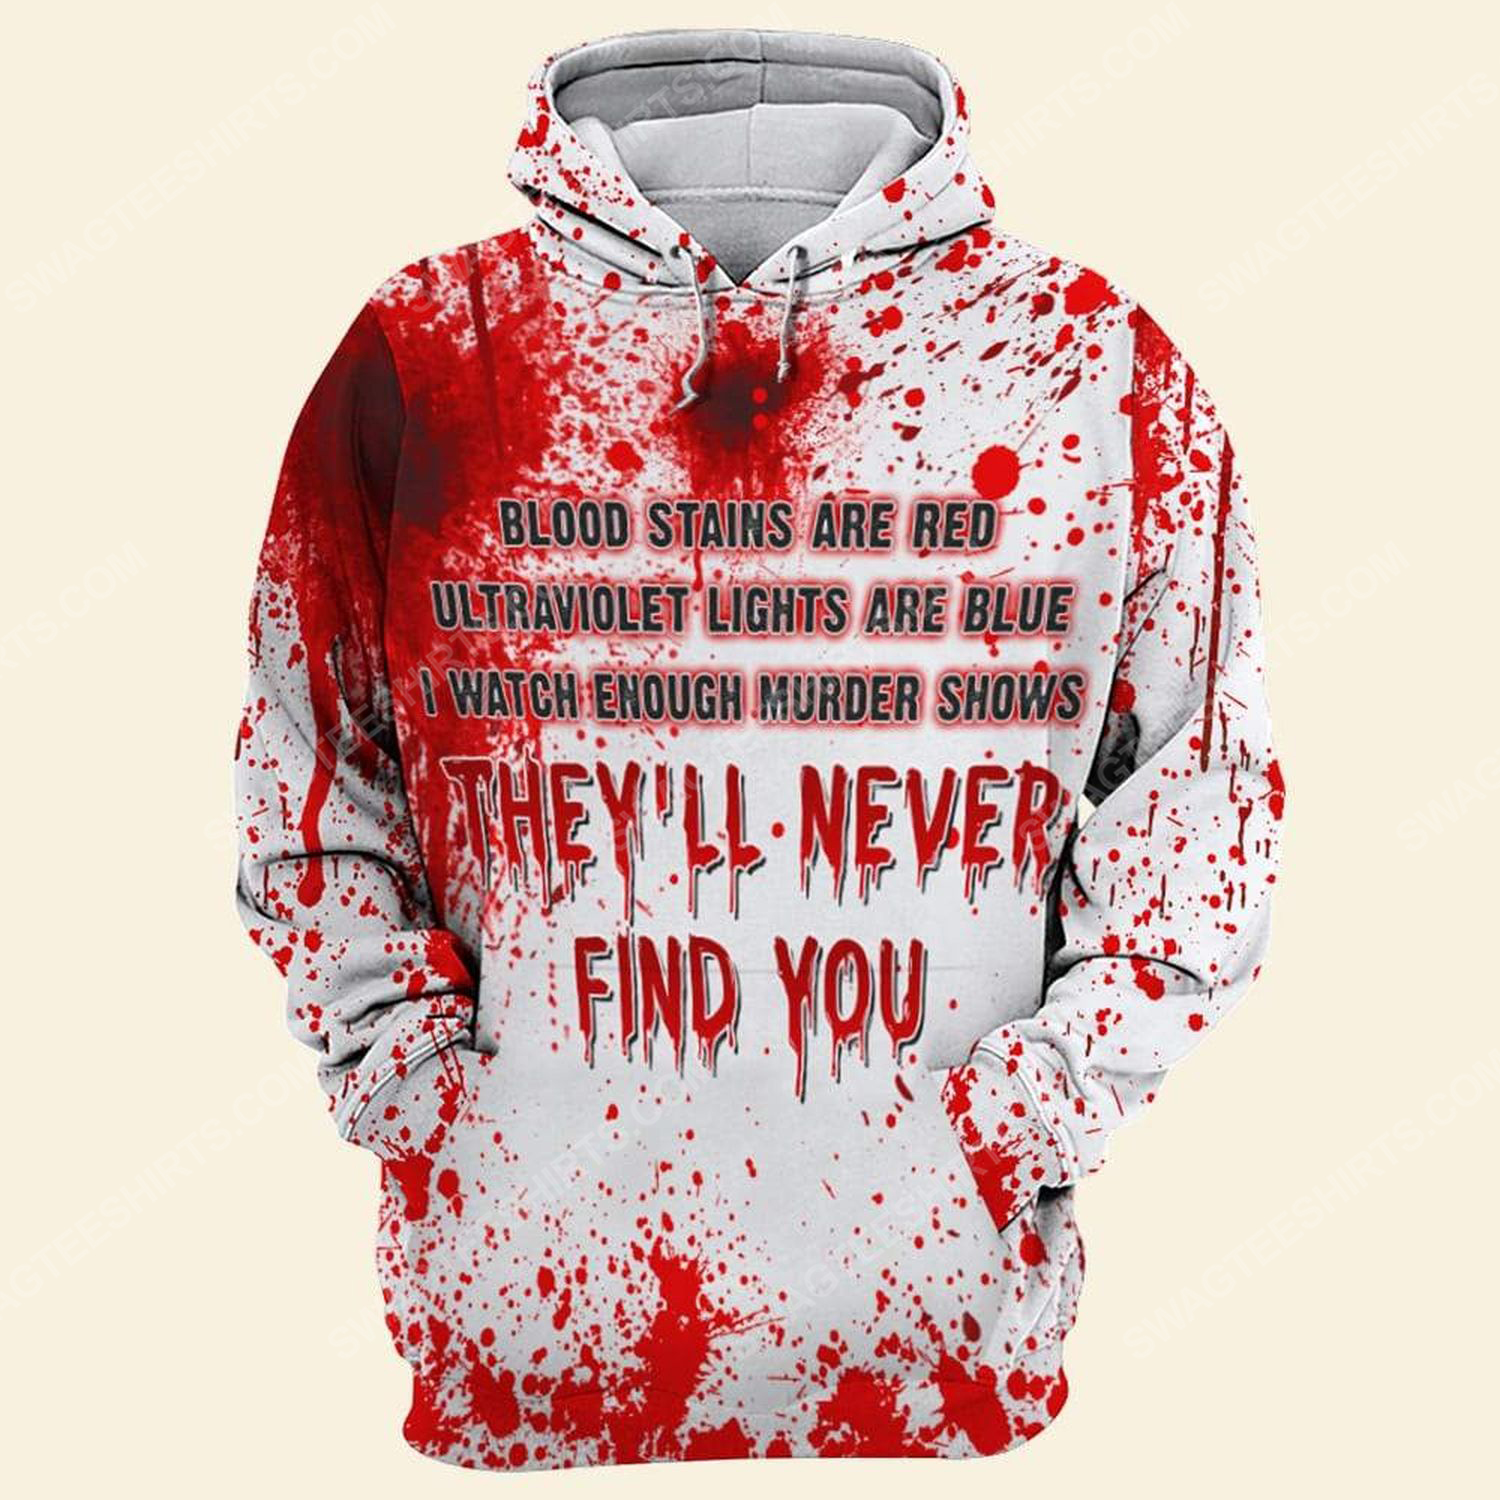 Halloween blood stains are red ultraviolet lights are blue i watch enough murder shows they'll never find you hoodie